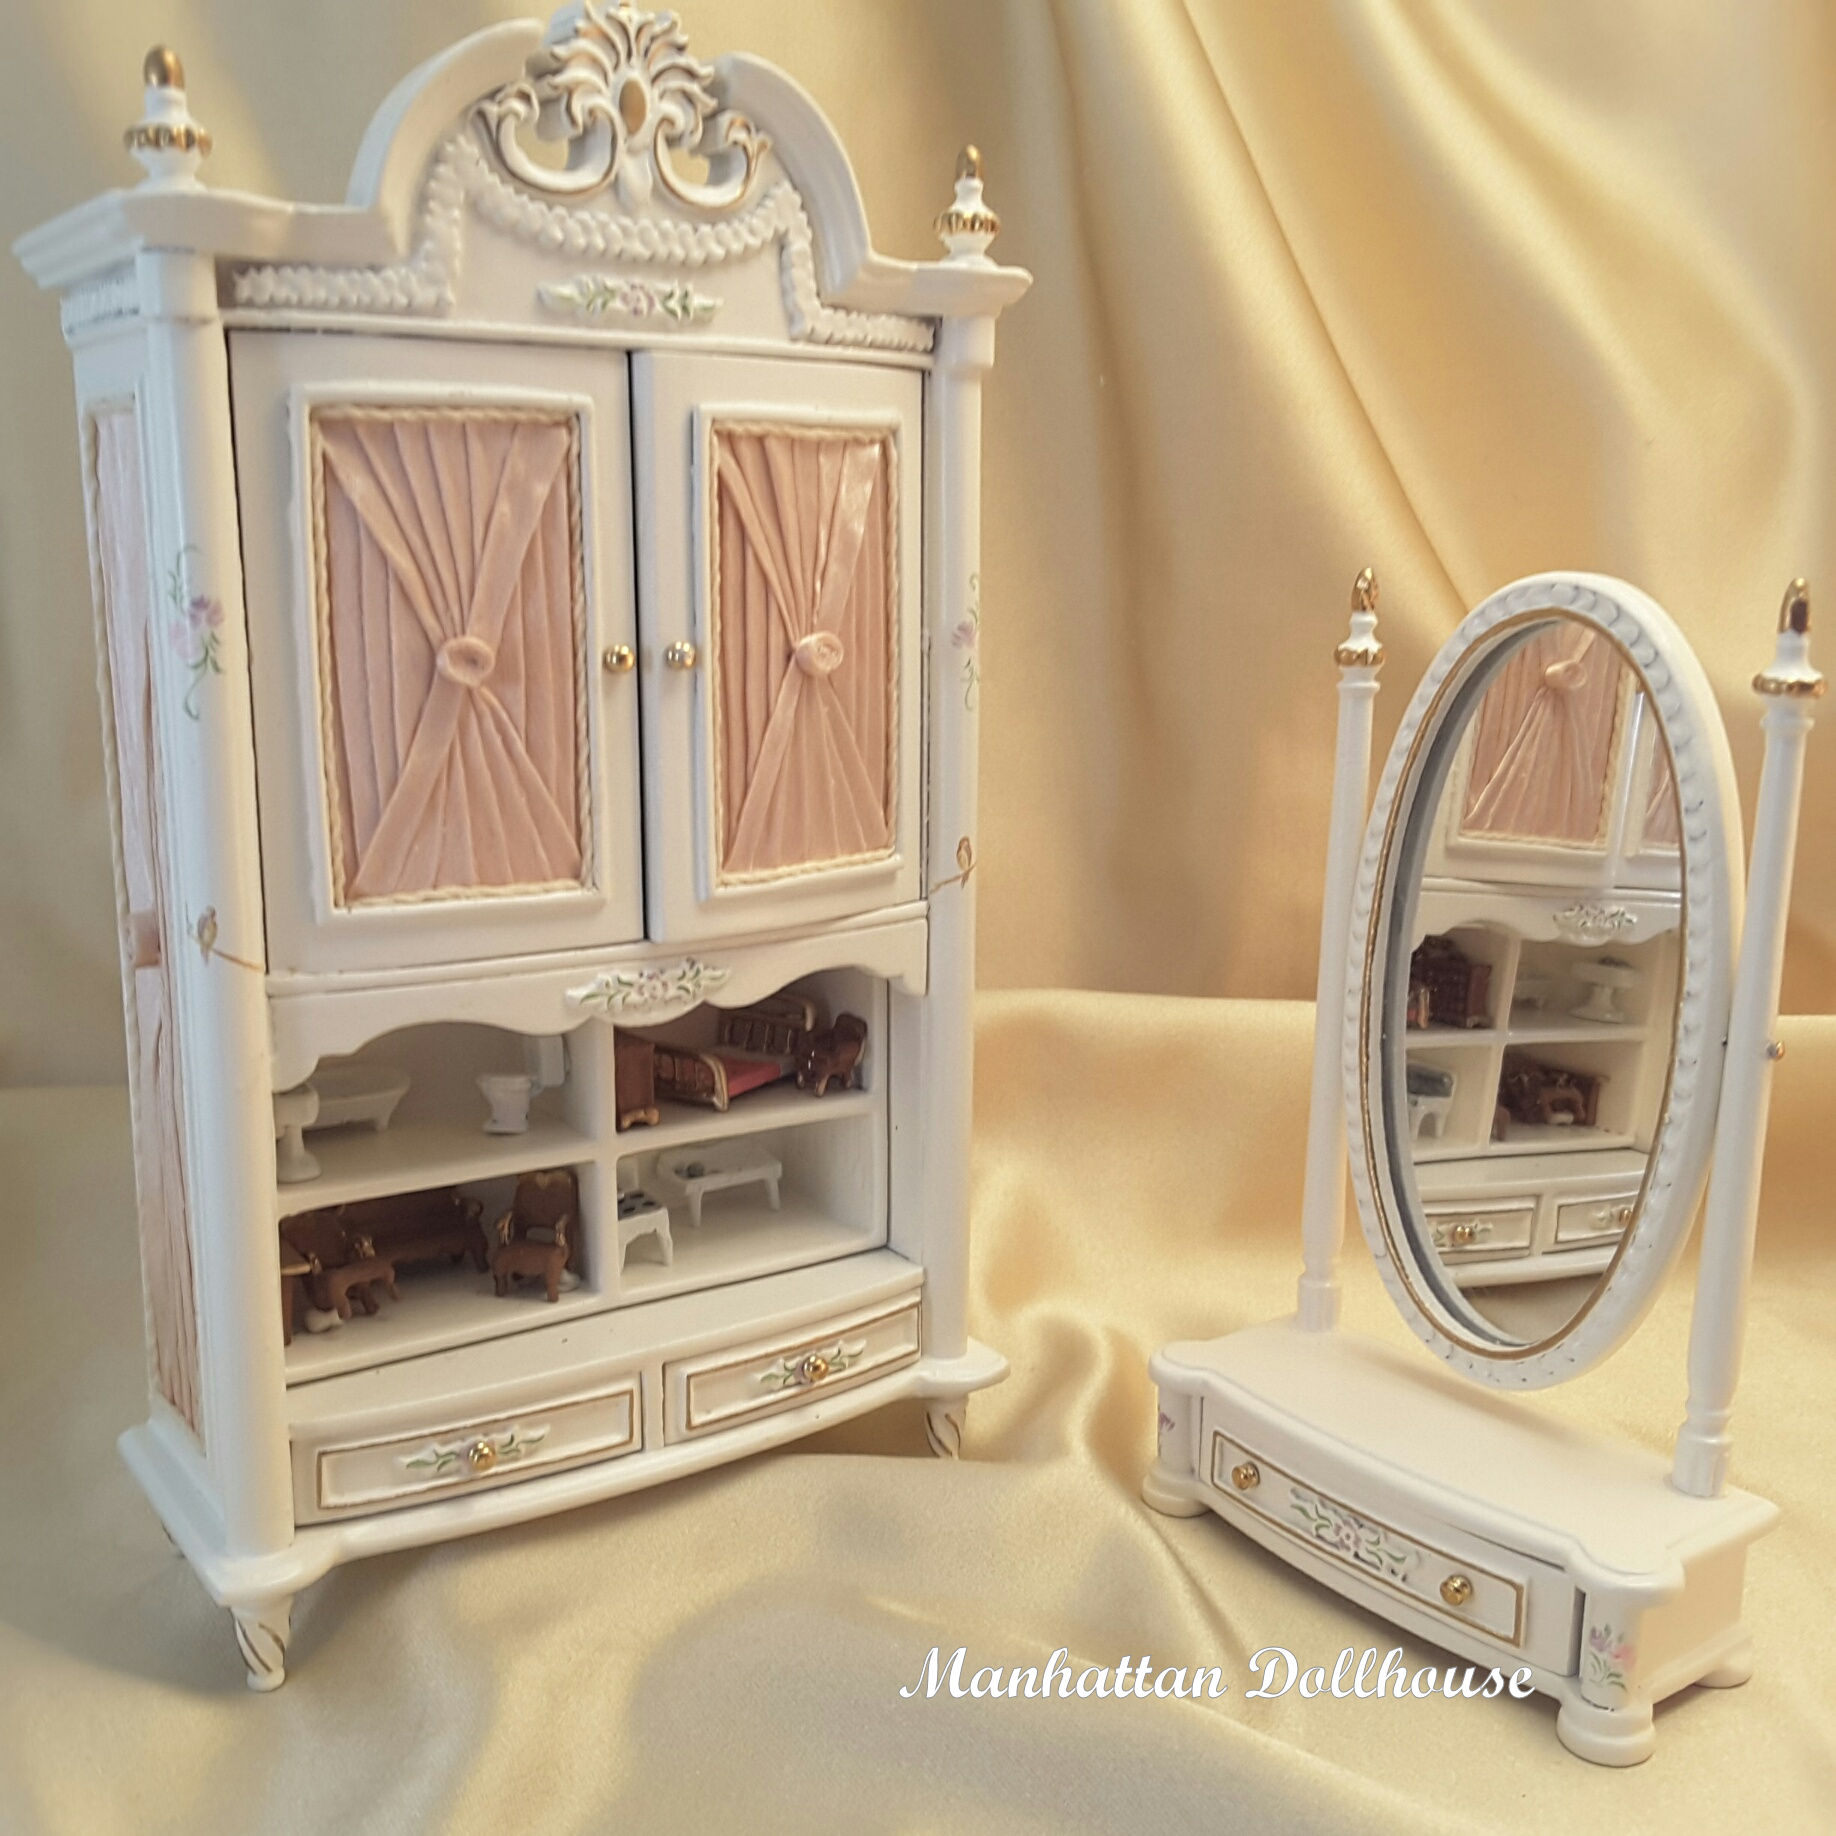 Miniature Dollhouse Madeline Girls Bedroom Set Click To Enlarge